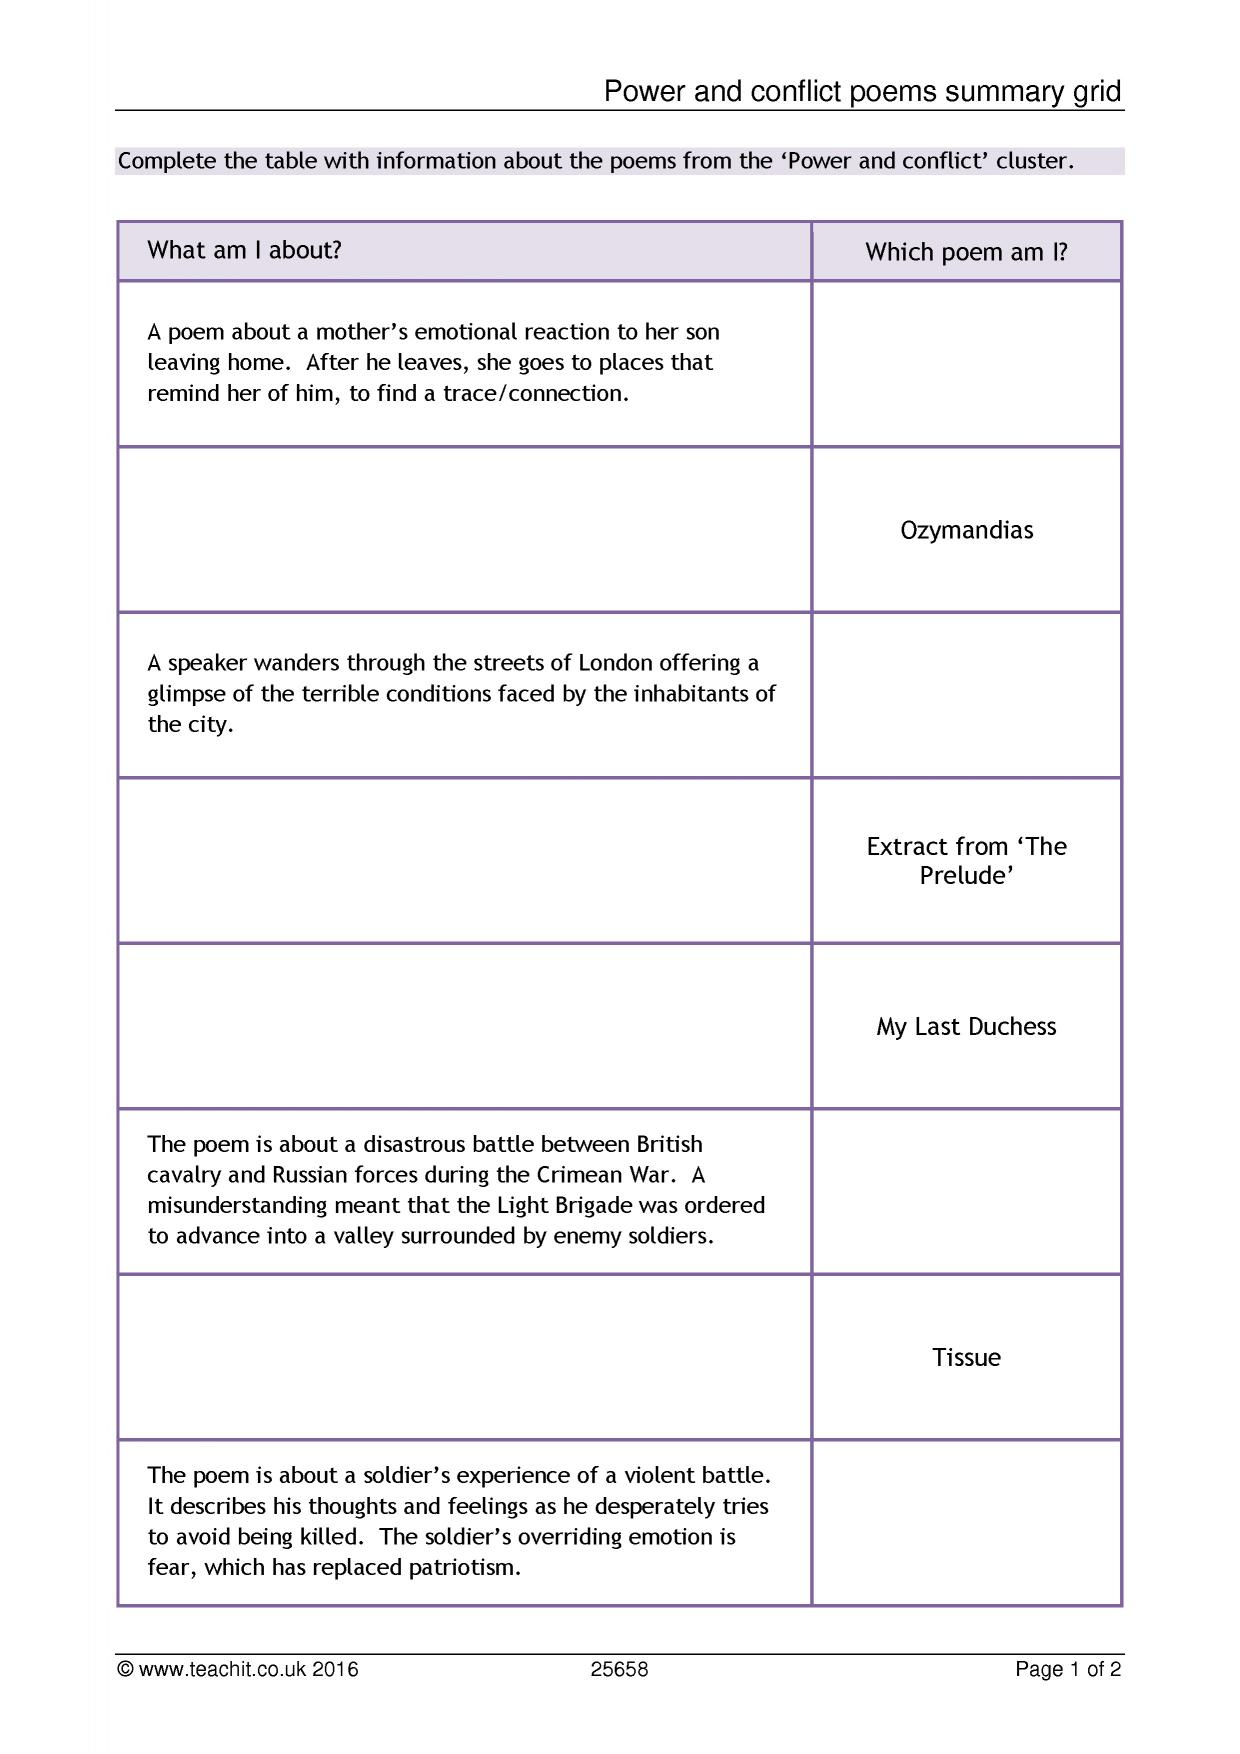 Power And Conflict Poems Summary Grid